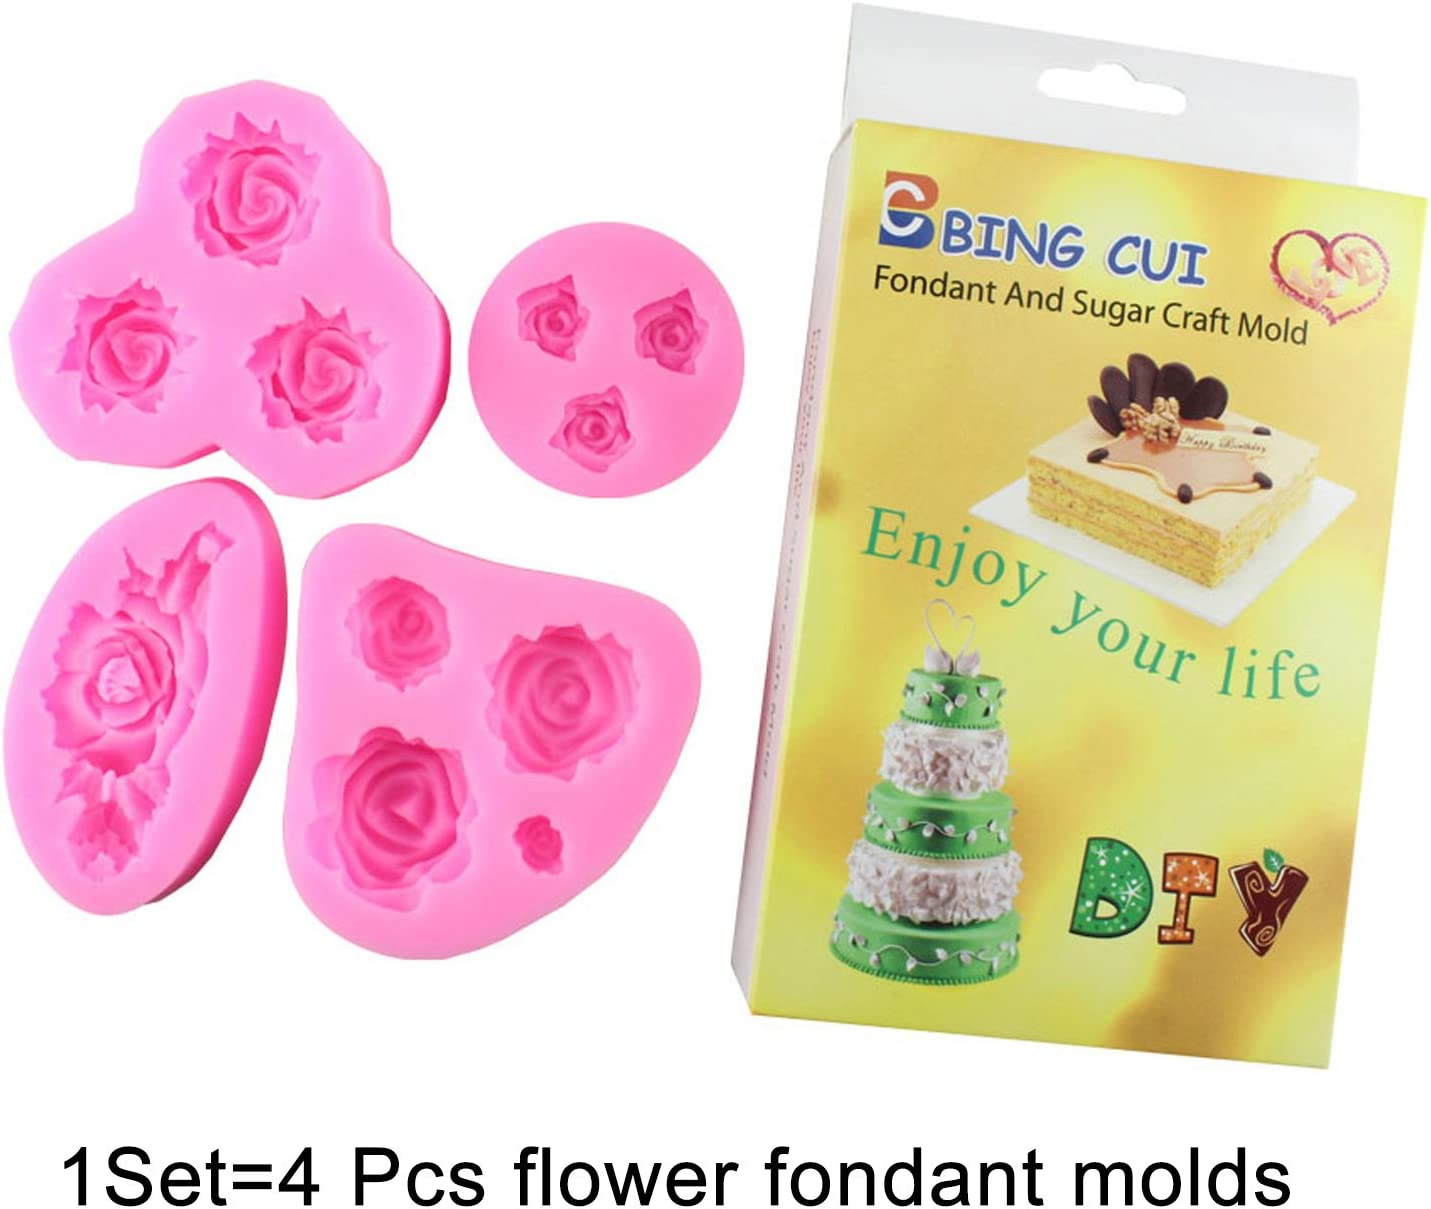 BINGCUI Cake Decorating Silicone Flower Molds Fondant Tools Sugarcraft Rose Candy Mold Set of 4 With Box